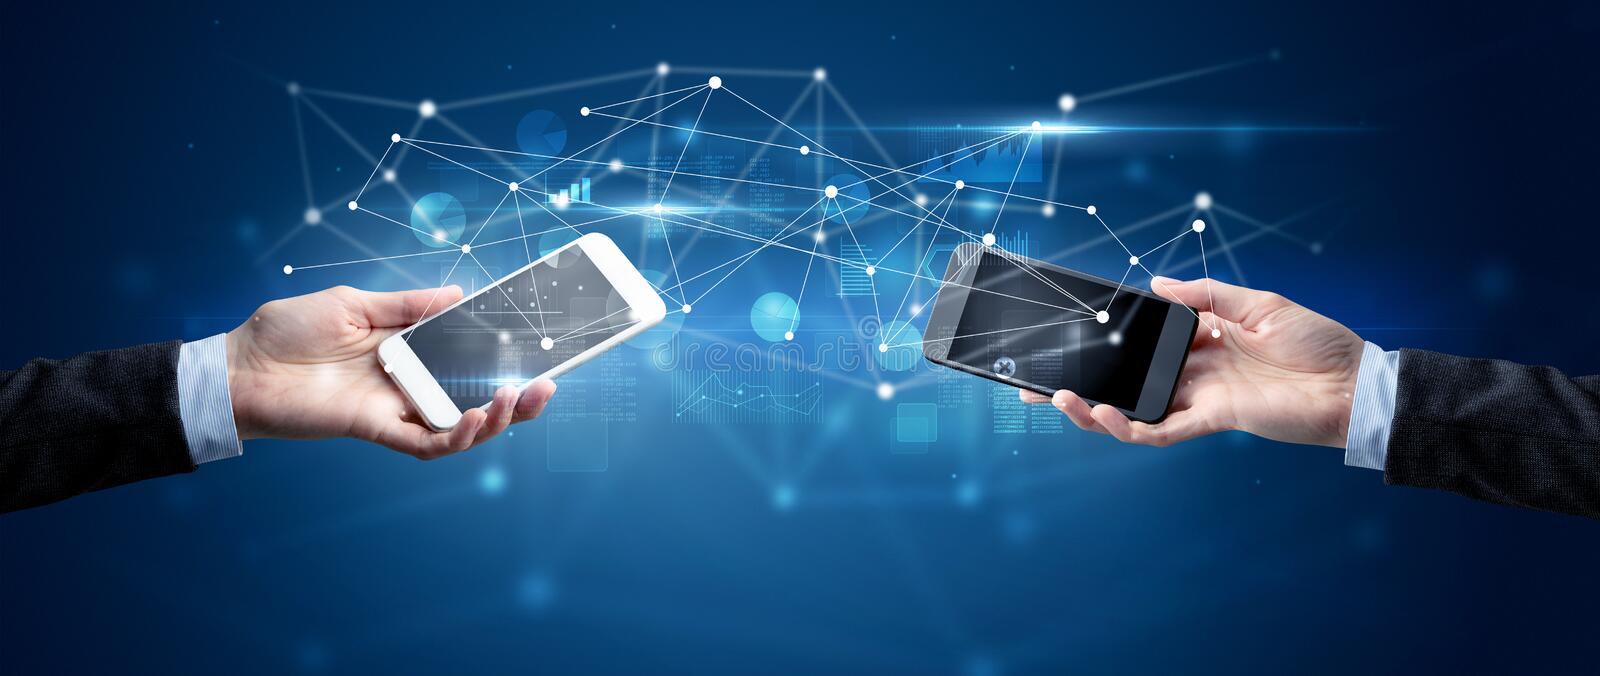 Smartphones sharing business data stock photography